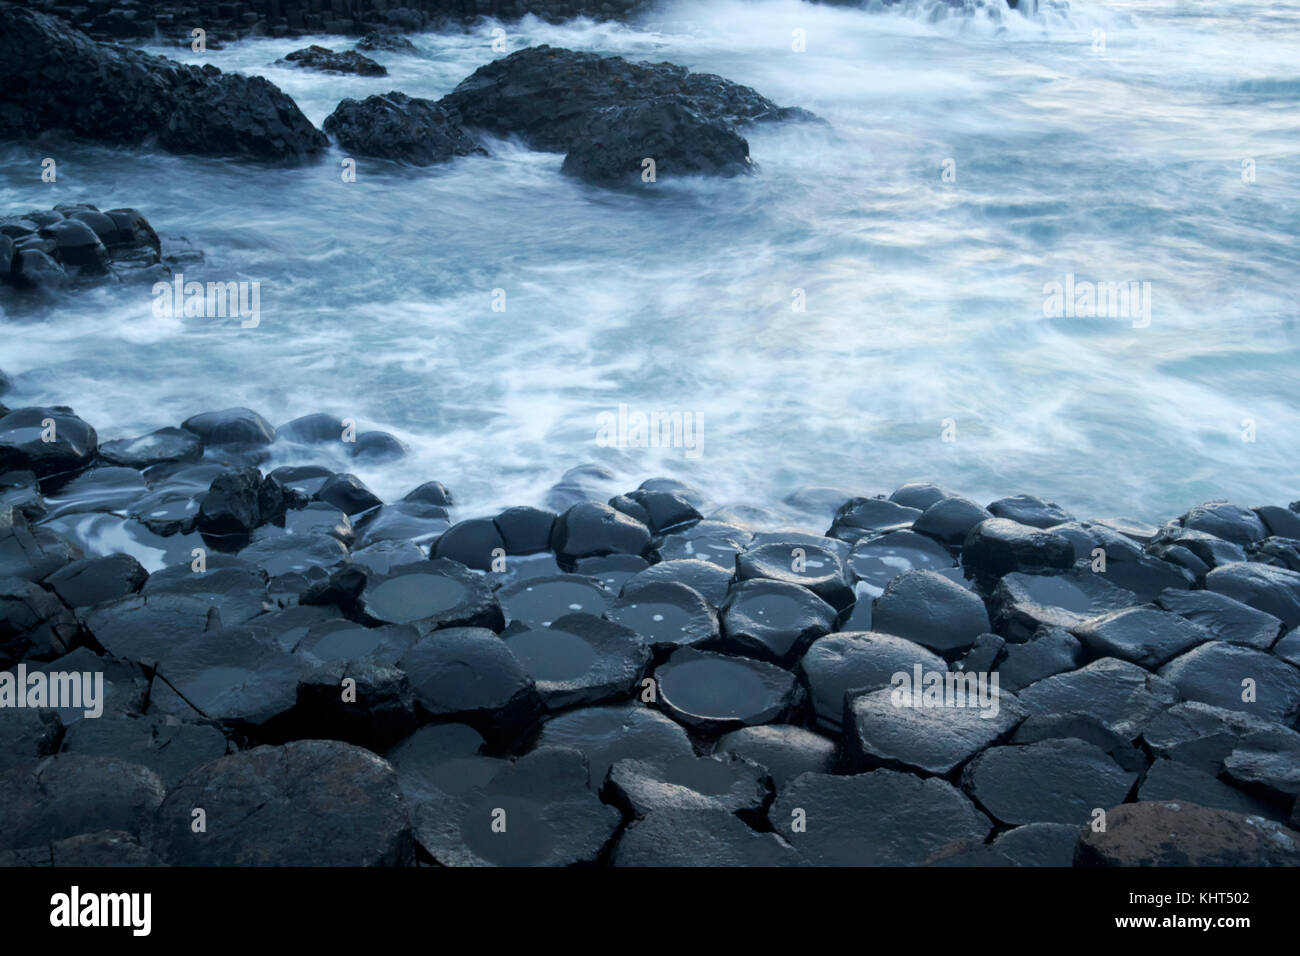 rocks in evening twilight with milky sea due to long exposure at the Giants Causeway county antrim northern ireland - Stock Image